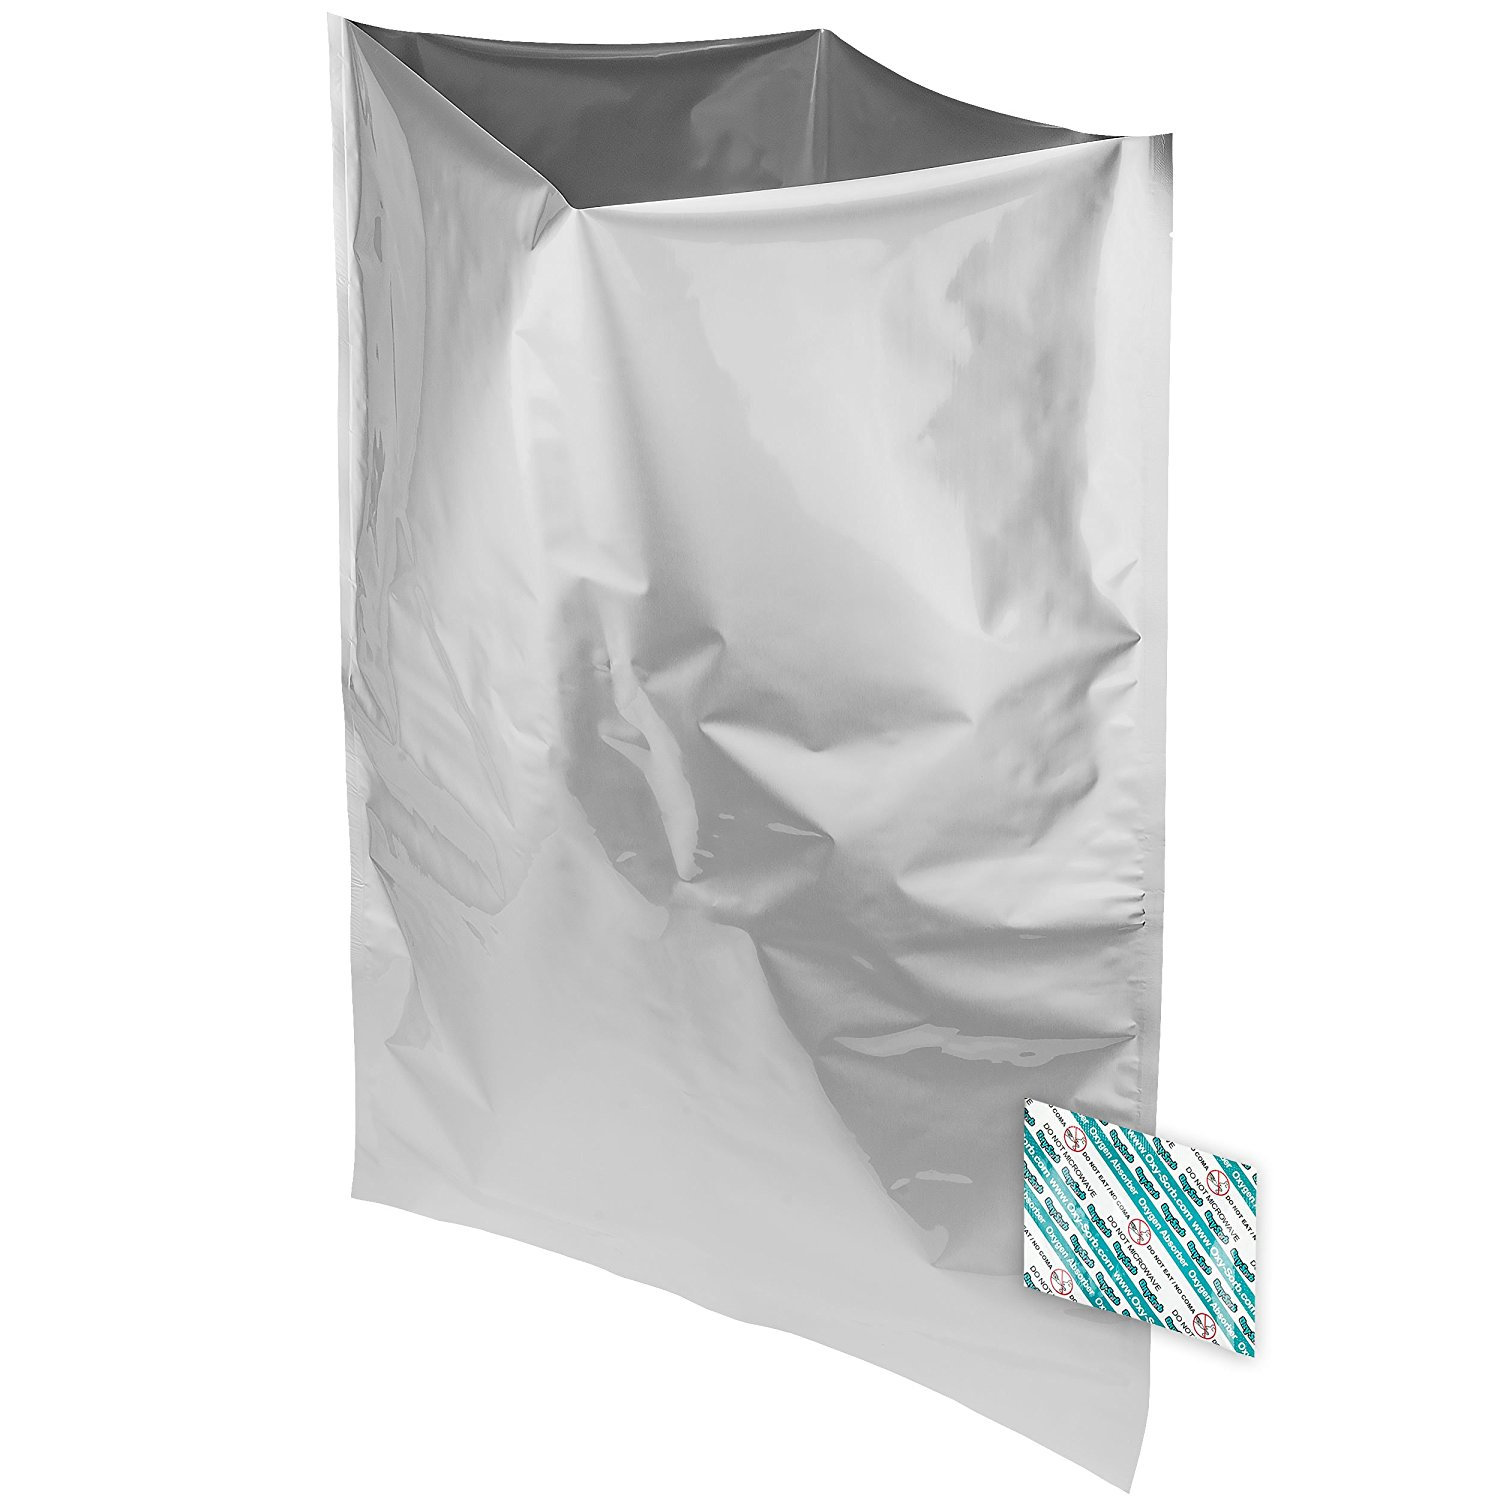 5 Gallon Mylar Bags And 10 2000cc Oxy Sorb Oxygen